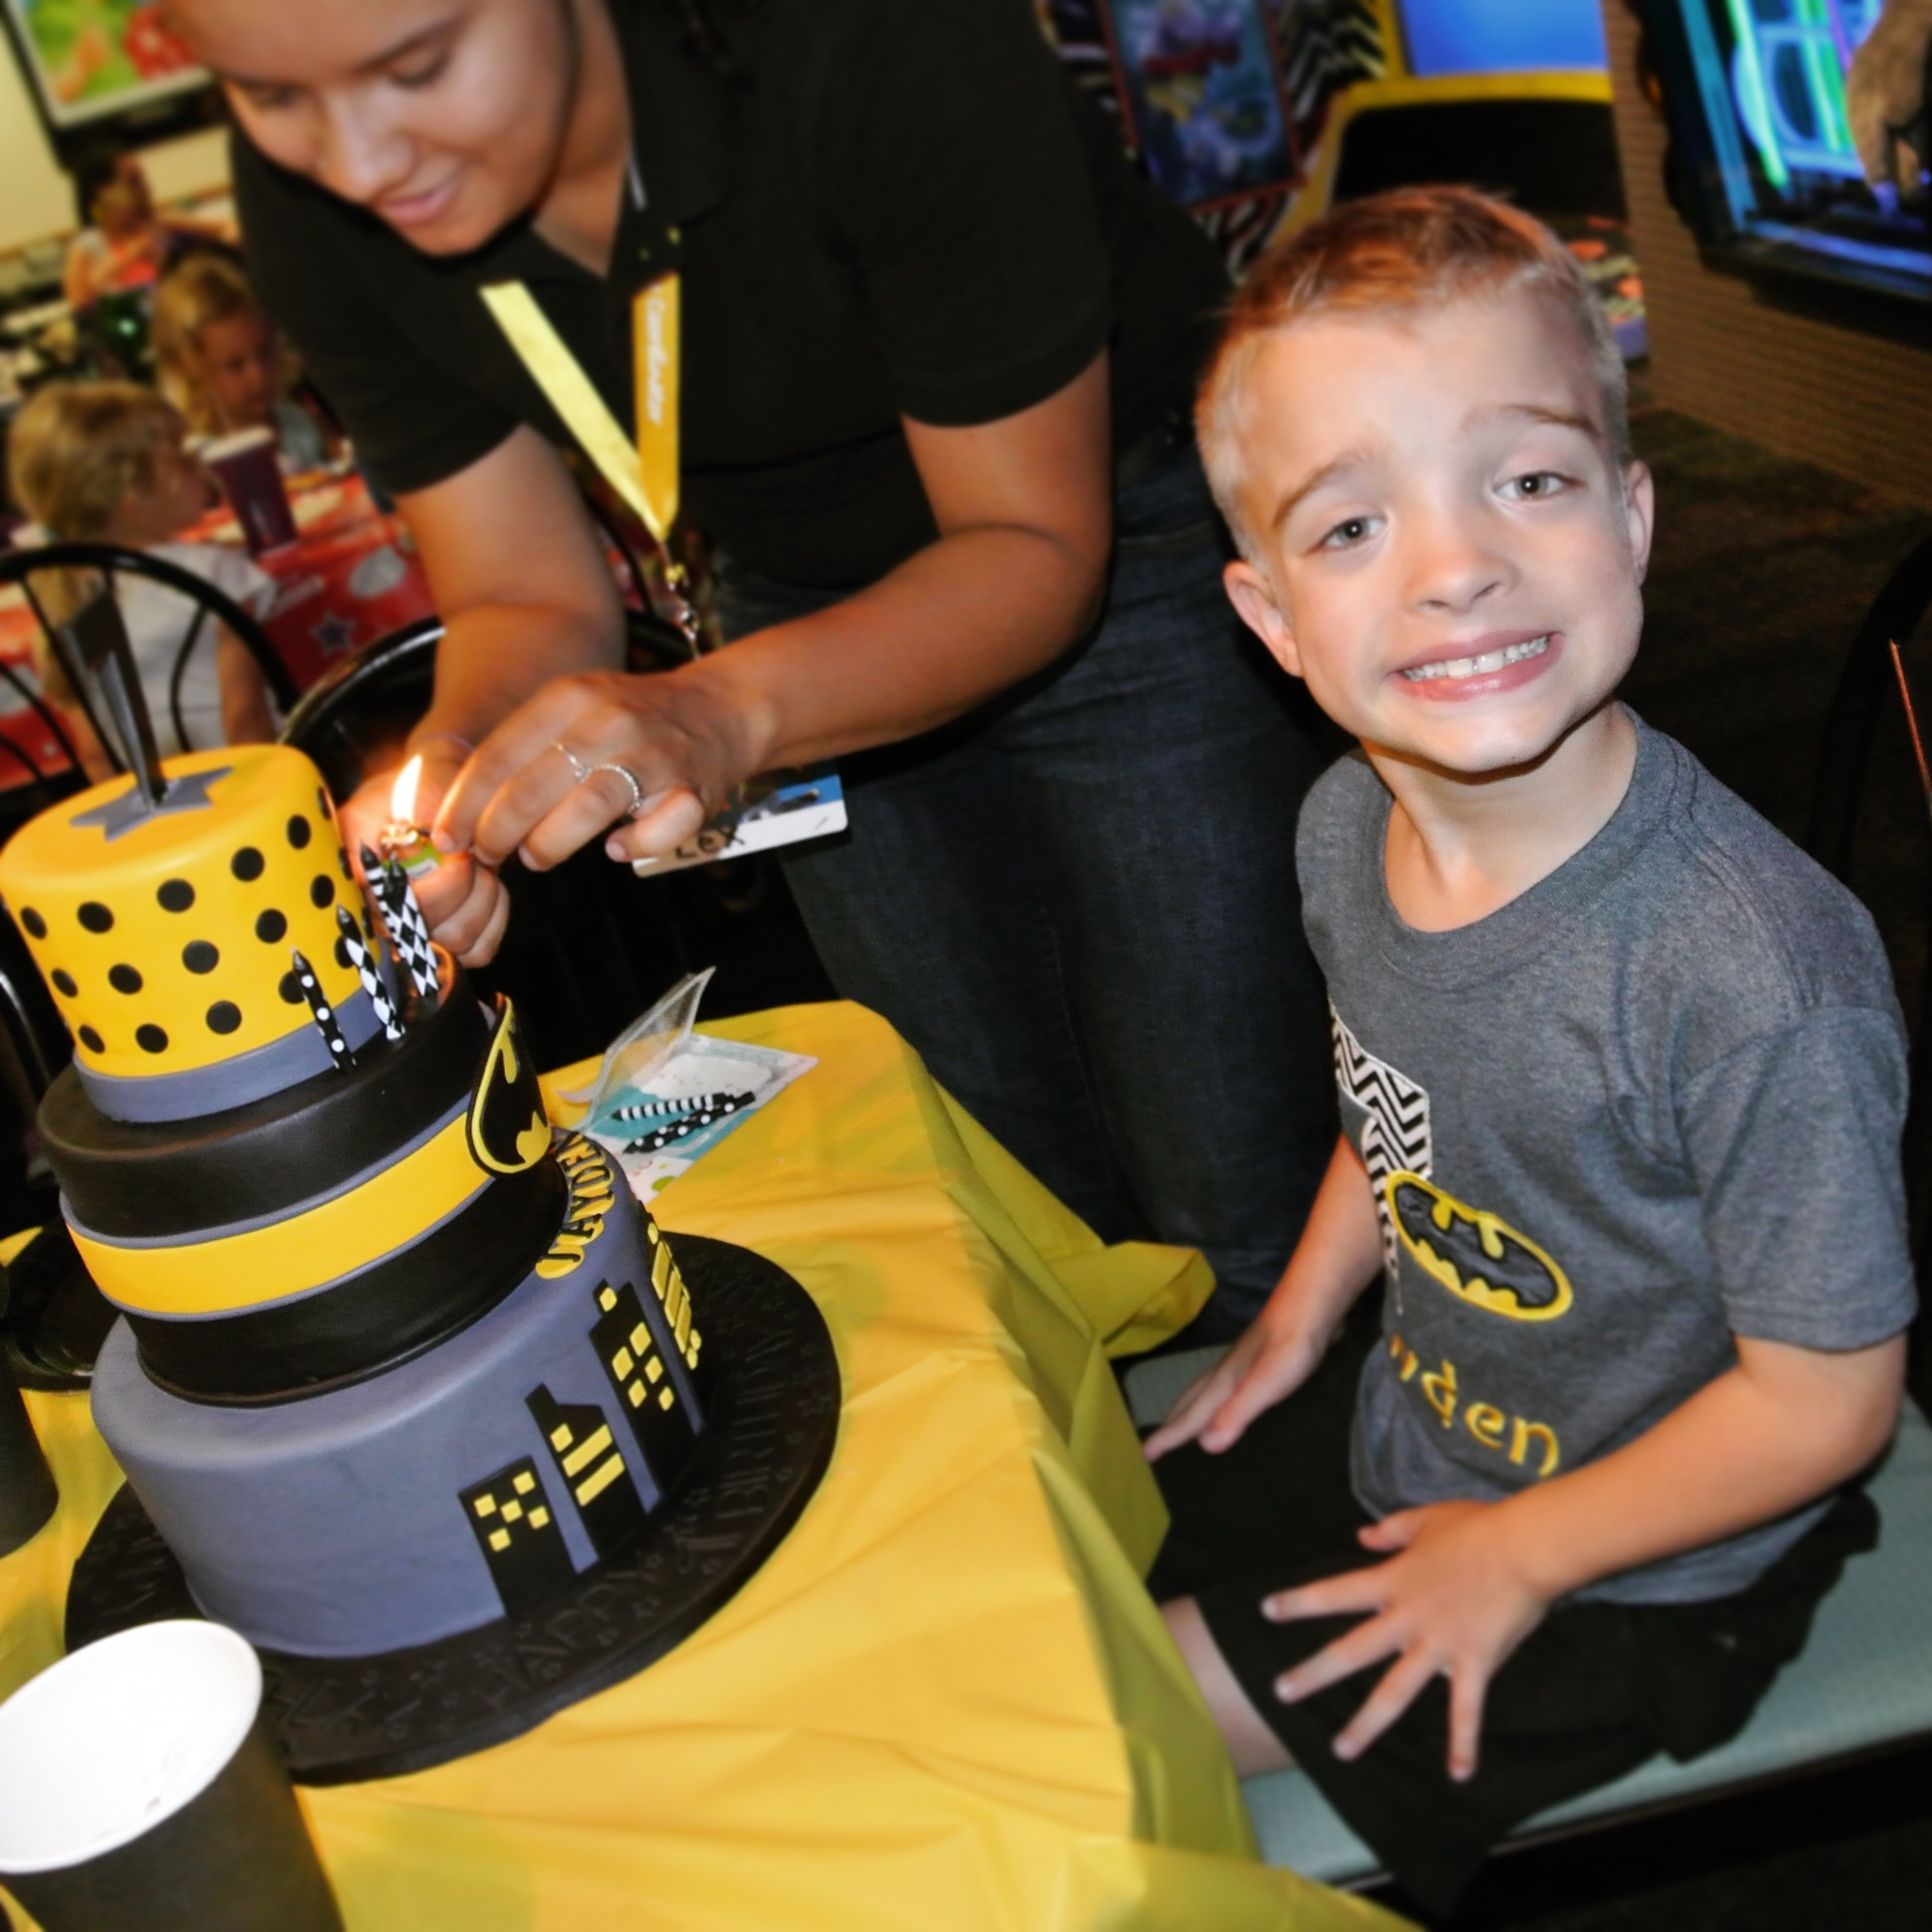 Eric with his batman cake